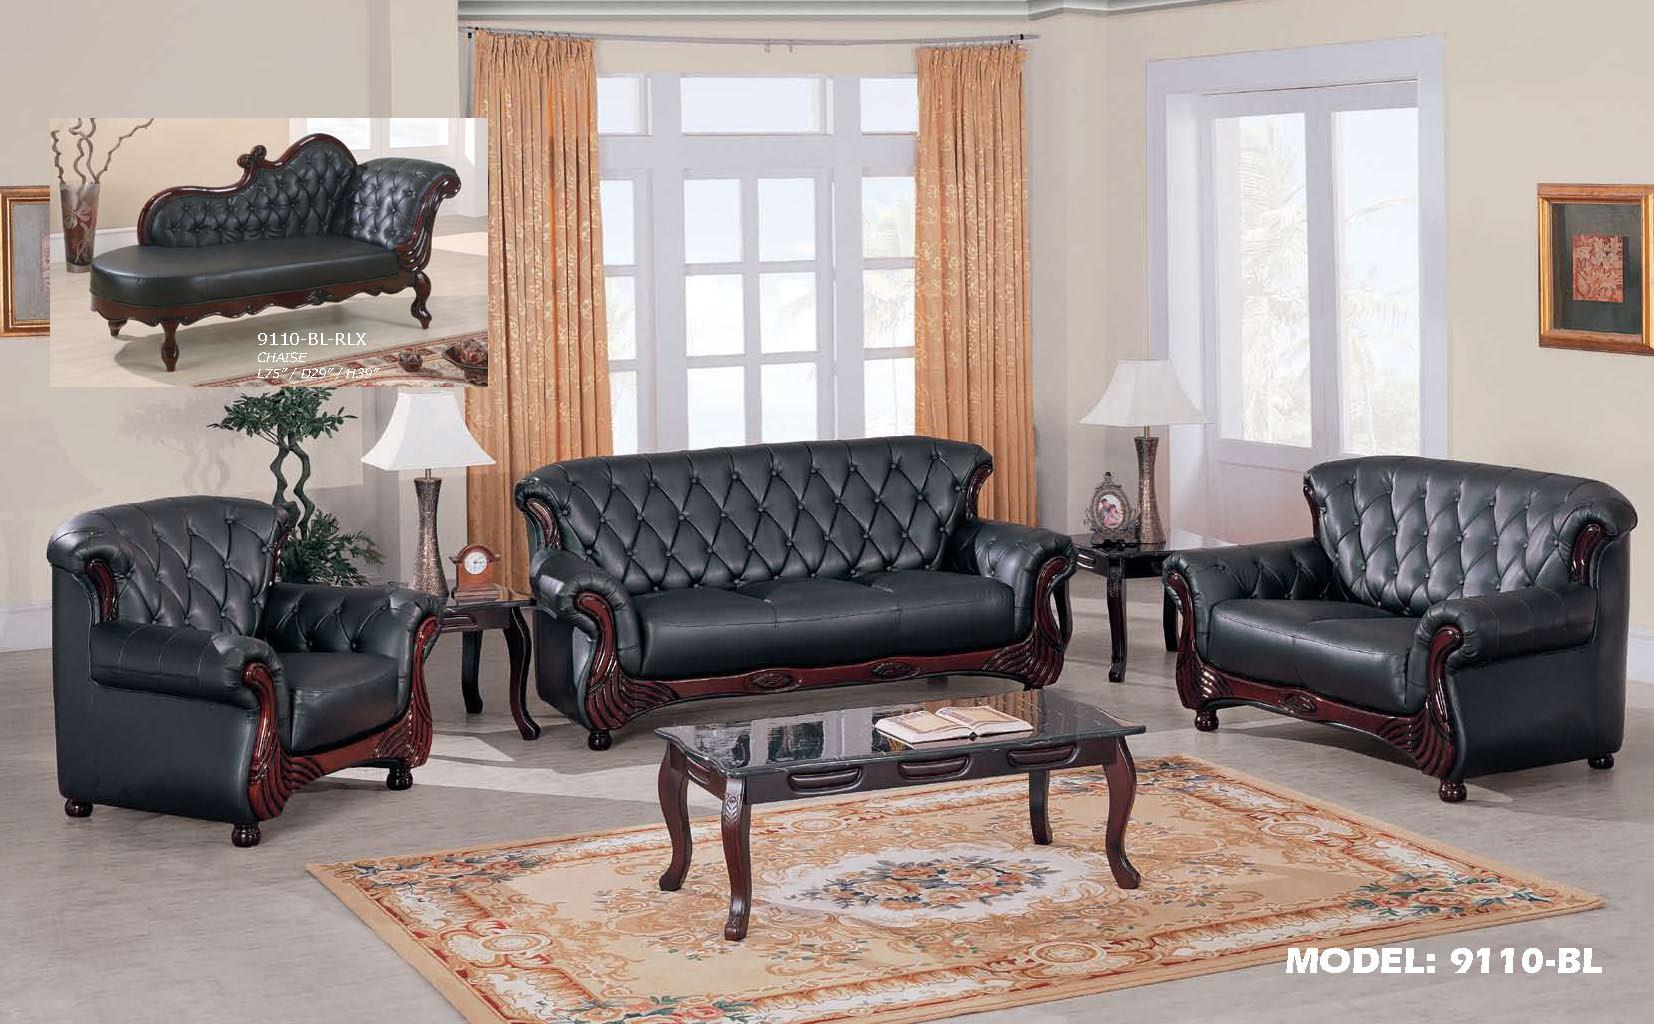 Leather Living Room Sets Room Store Living Room Furniture. Studio Apartment Living Room Bedroom. Living Room Feature Wall Examples. Dining Room Living Room Shared Wall. Living Room Ottawa. Contemporary Living Room Wall Designs. Living Room Makeover On A Tight Budget. Living Room Furniture Layout Rectangular Room. Living Room Addition Plans